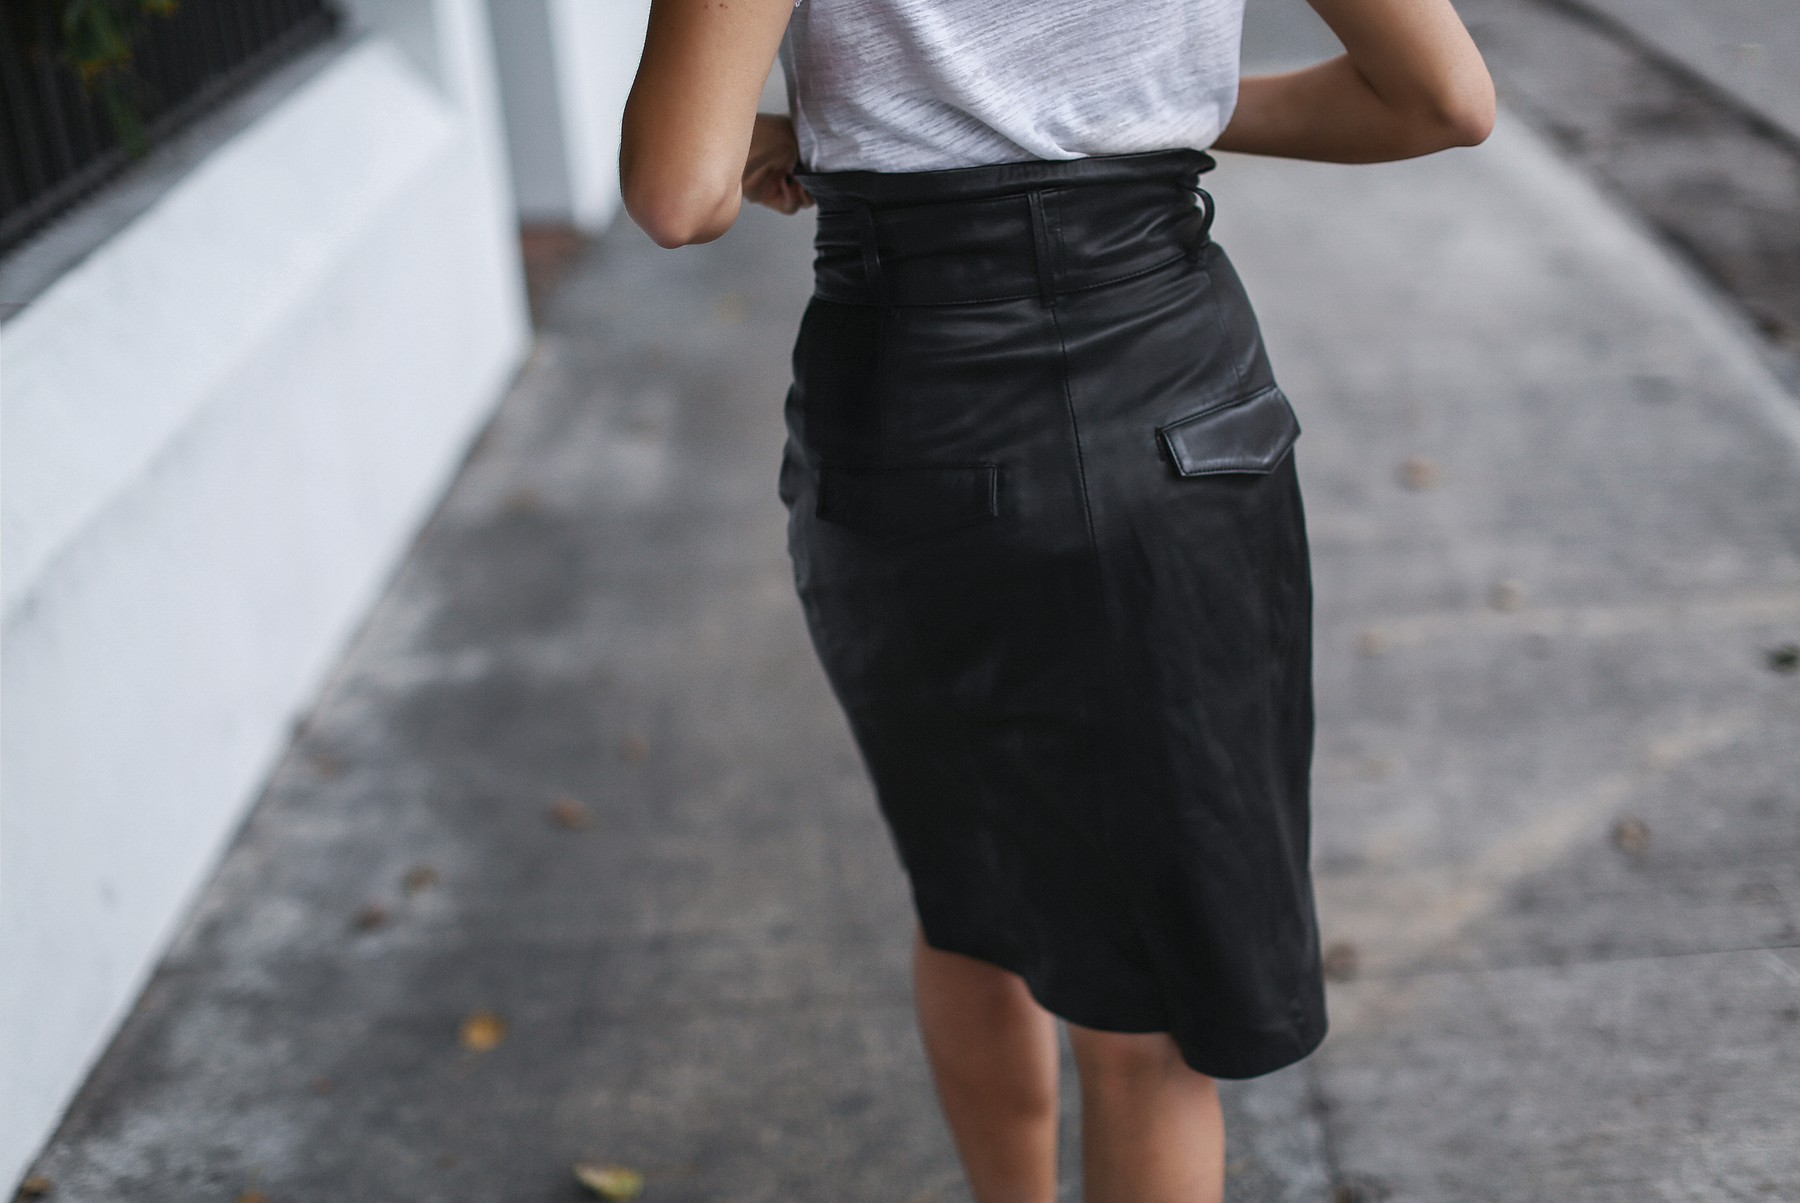 black knee length leather skirt with pockets and white tshirt